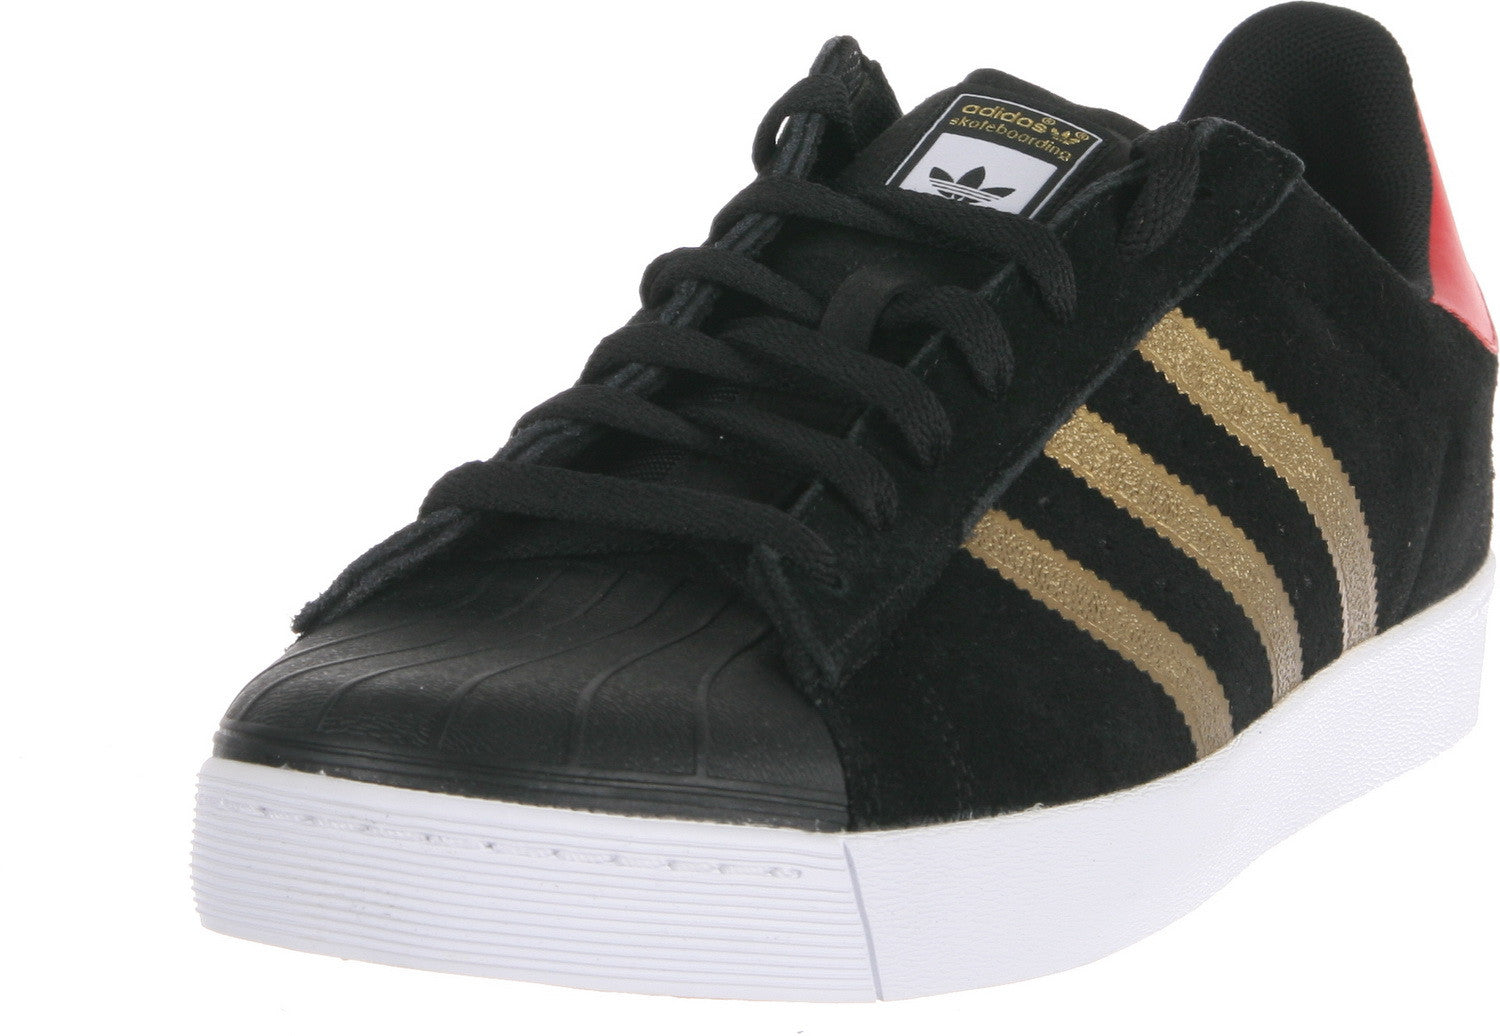 Adidas Men's Superstar Vulc Adv Ankle High Suede Fashion Sneaker